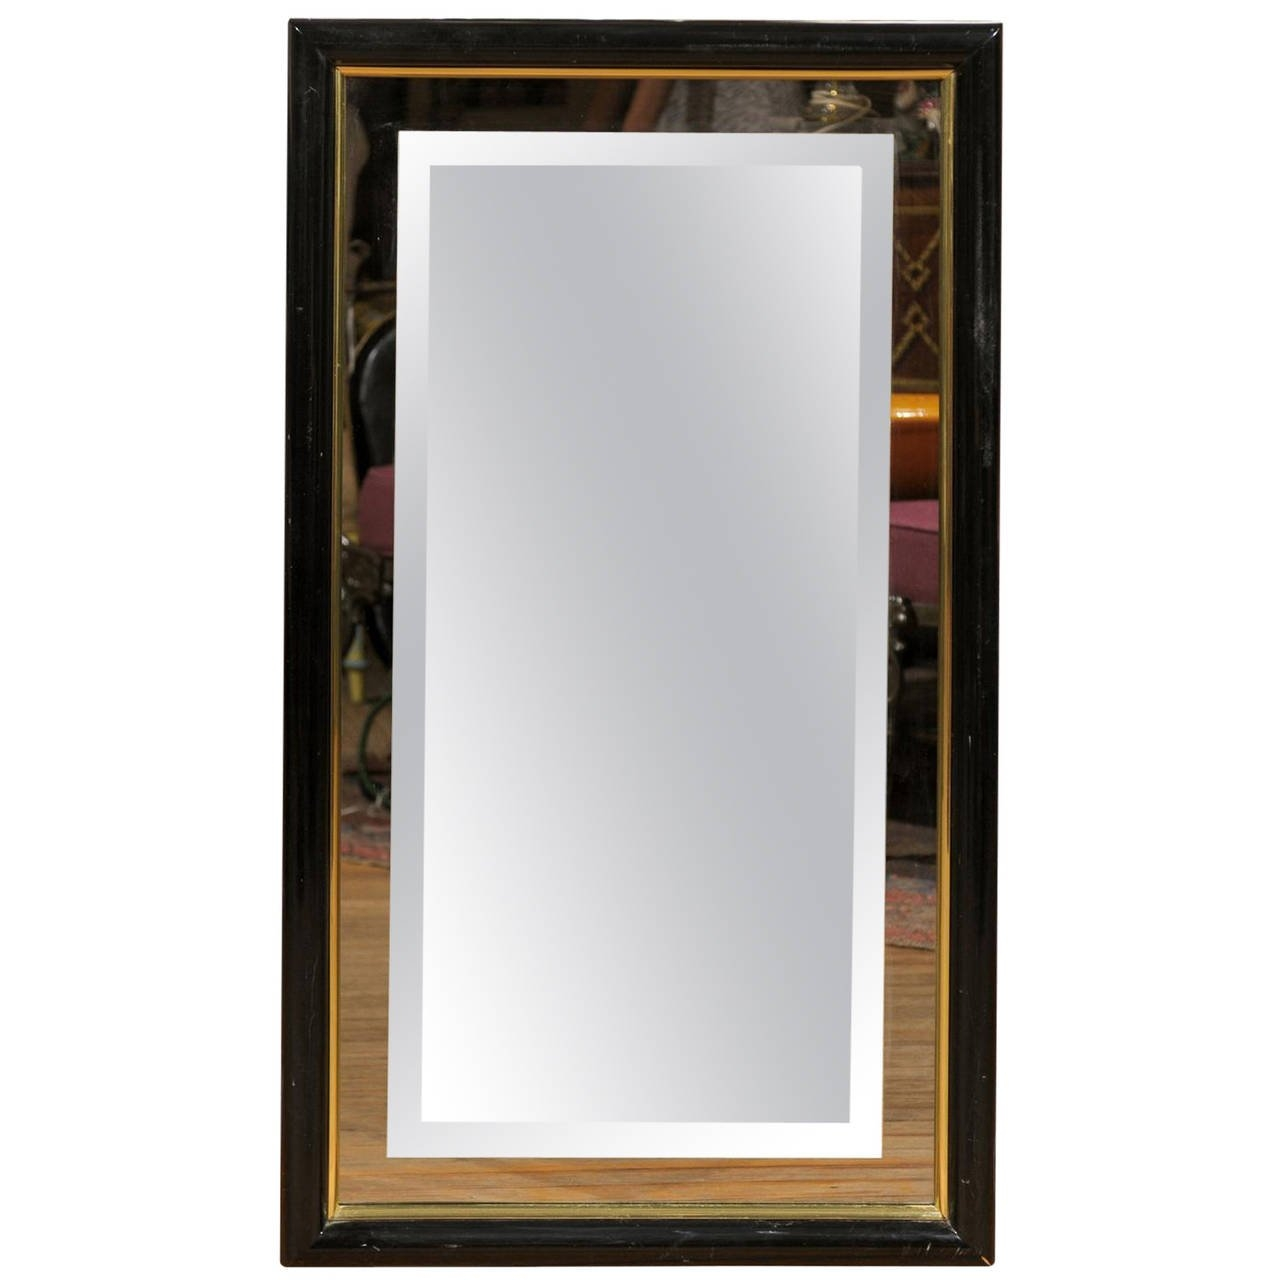 Smoked And Beveled Glass Wall Mirror In A Black And Brass Frame For Brass Mirrors For Sale (Image 12 of 15)